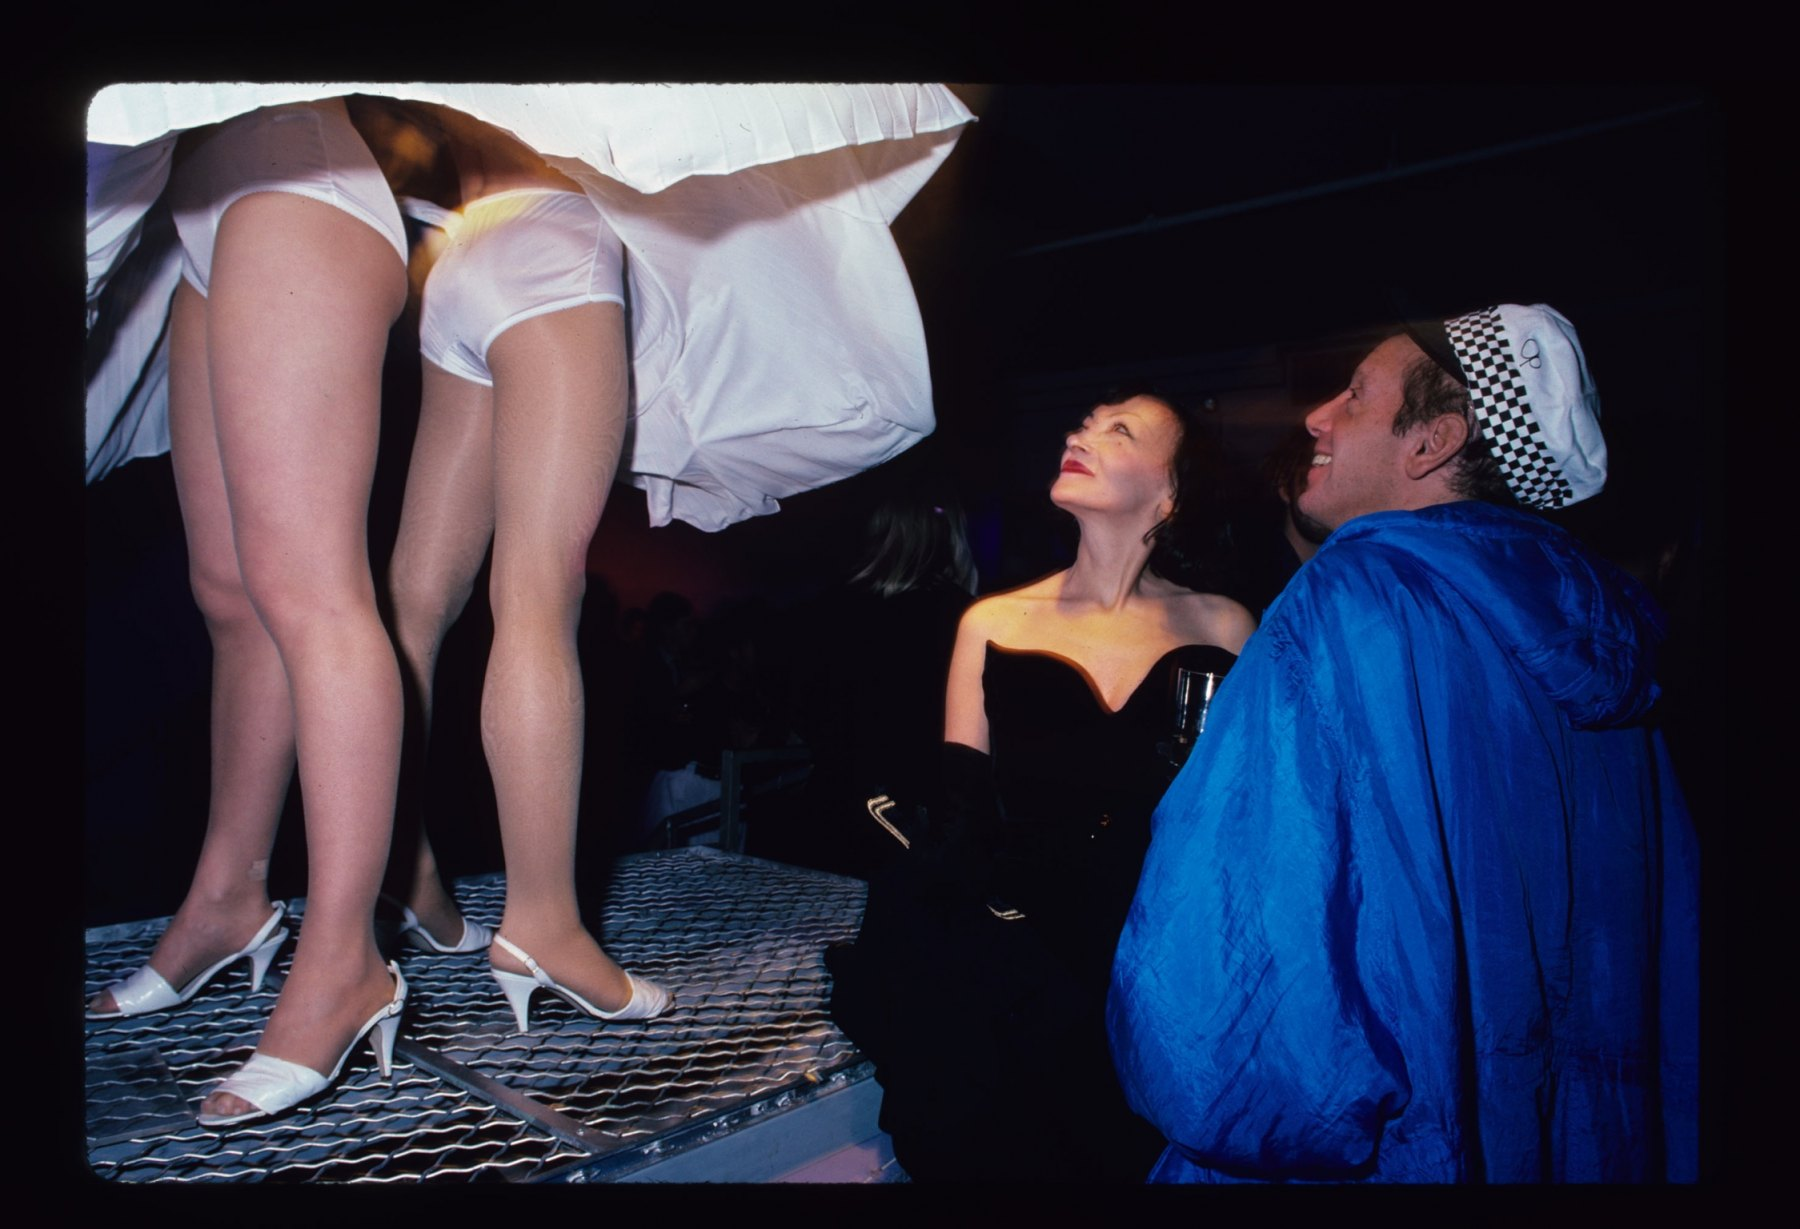 Steve Rubell's View Underneath the Skirt of Double Marilyn, NY 1985